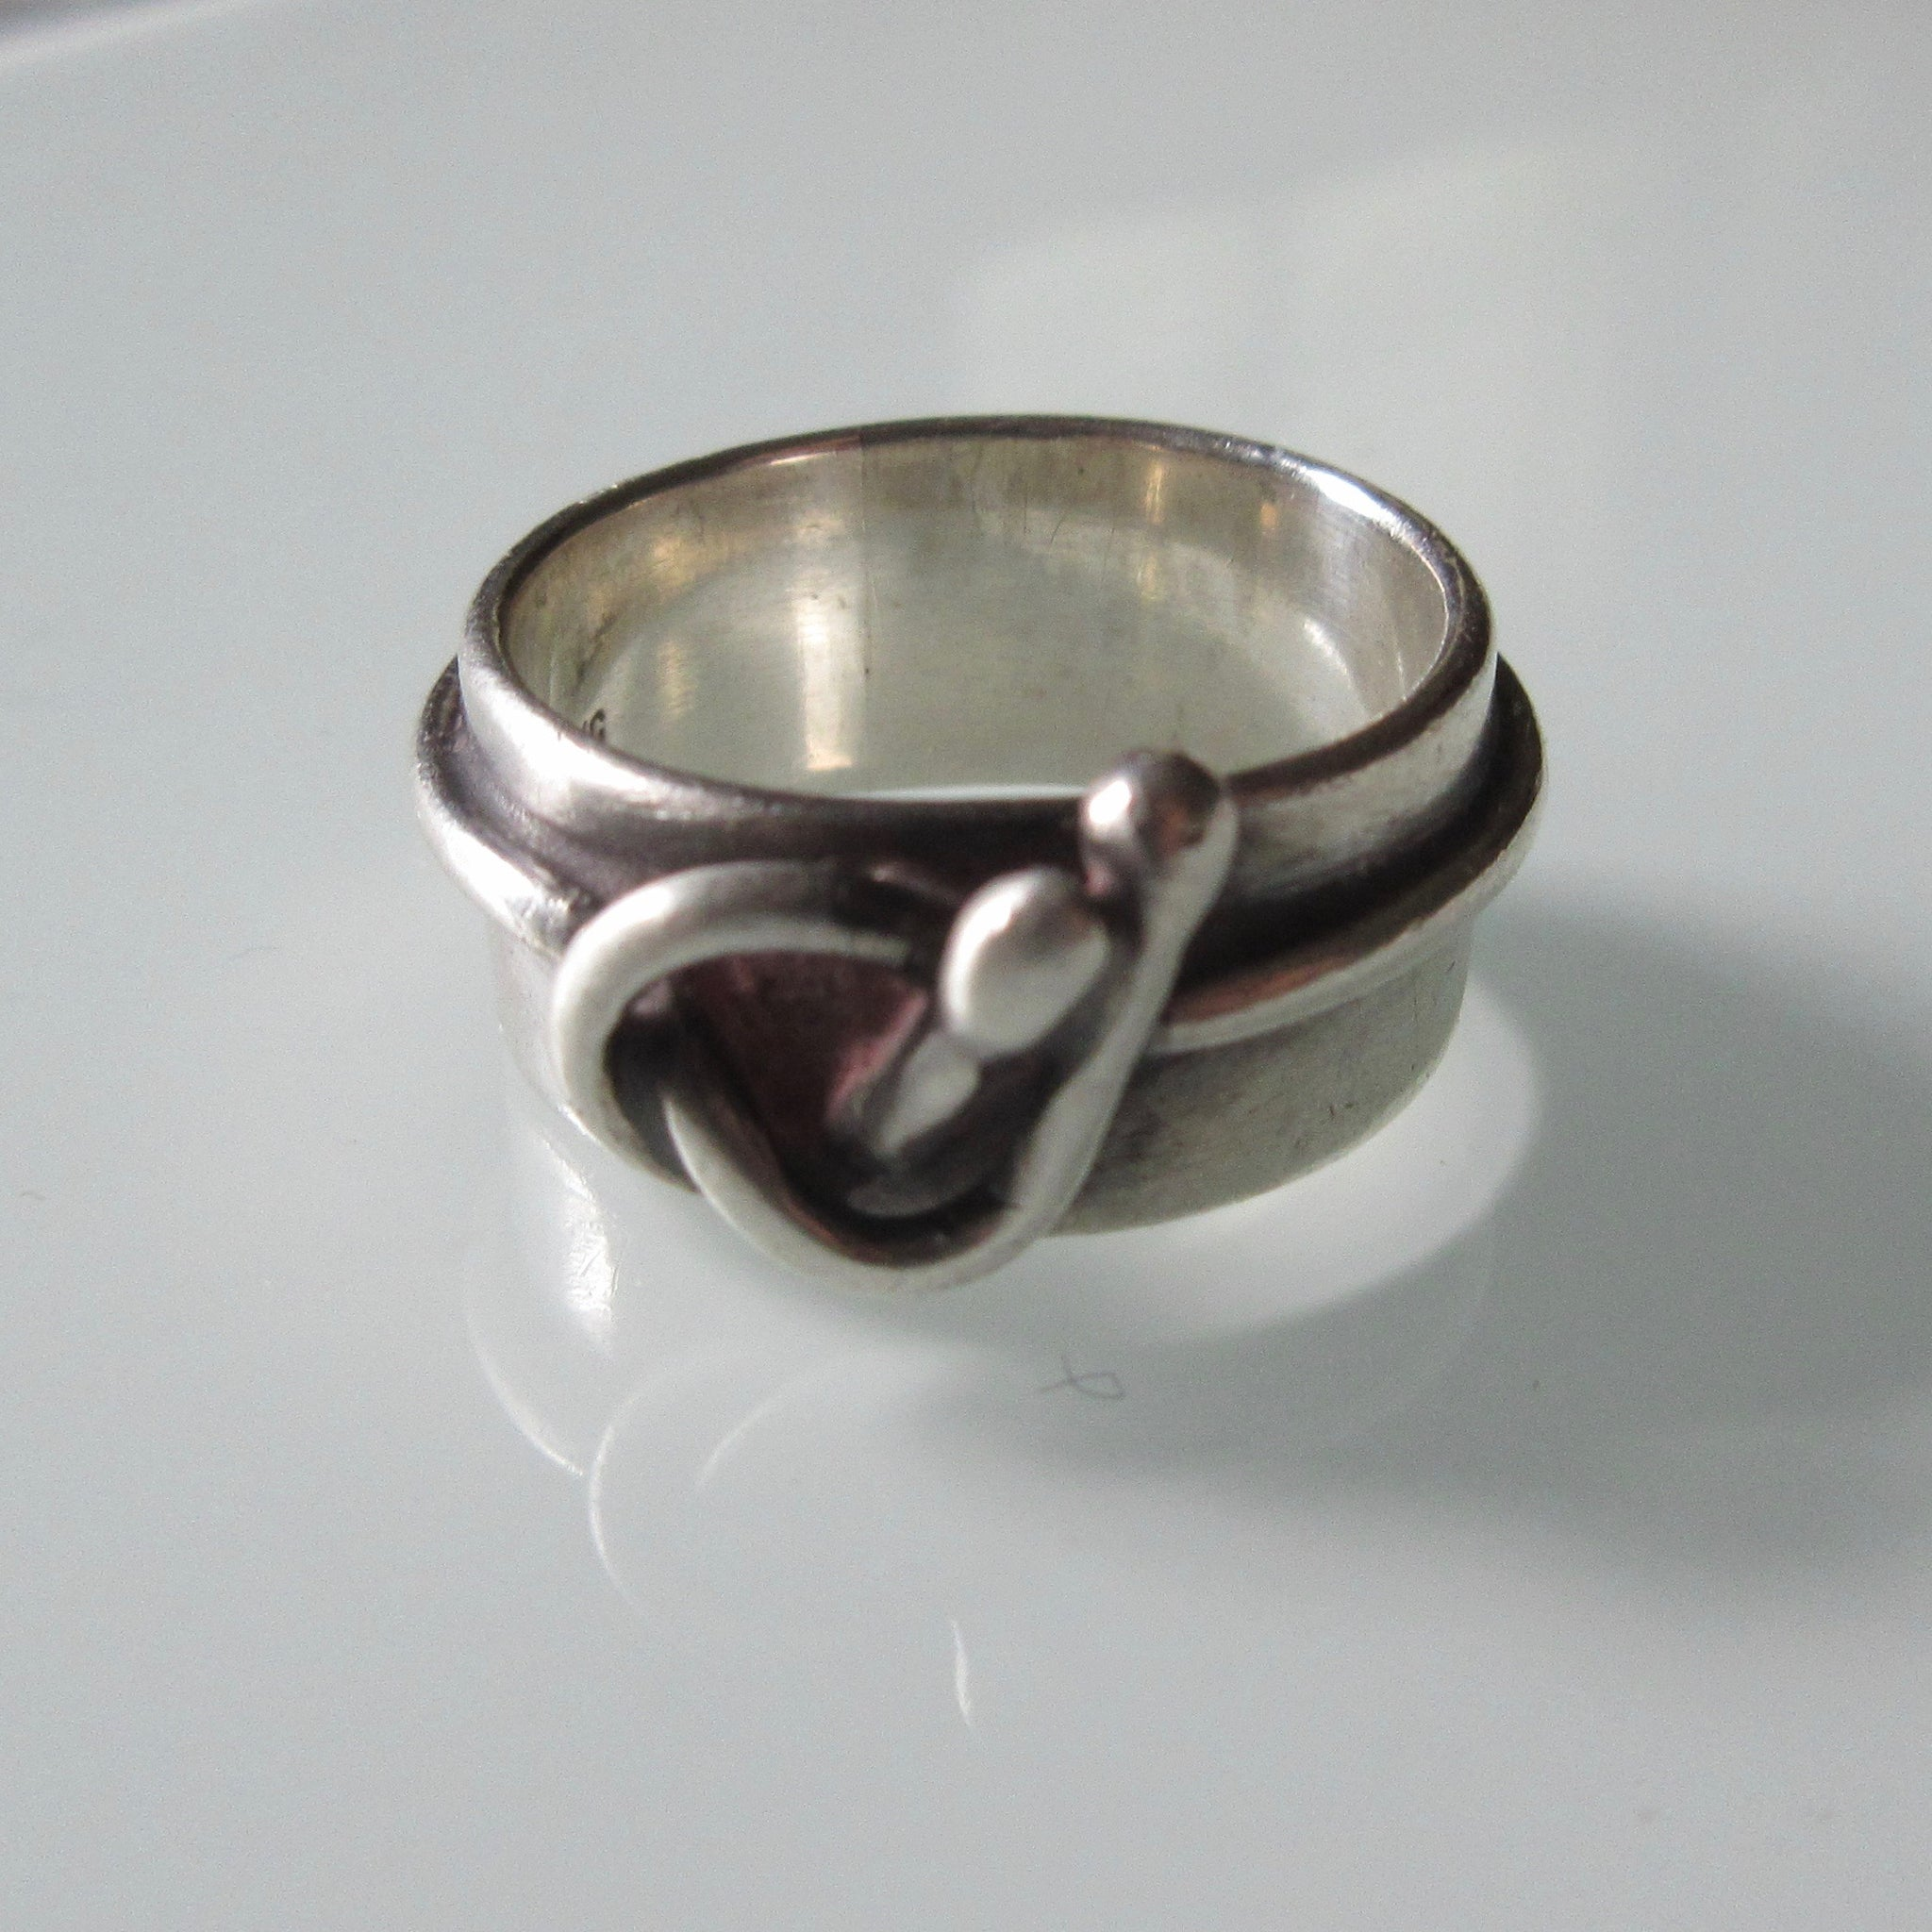 Modernist Sterling Silver Ring Mieke